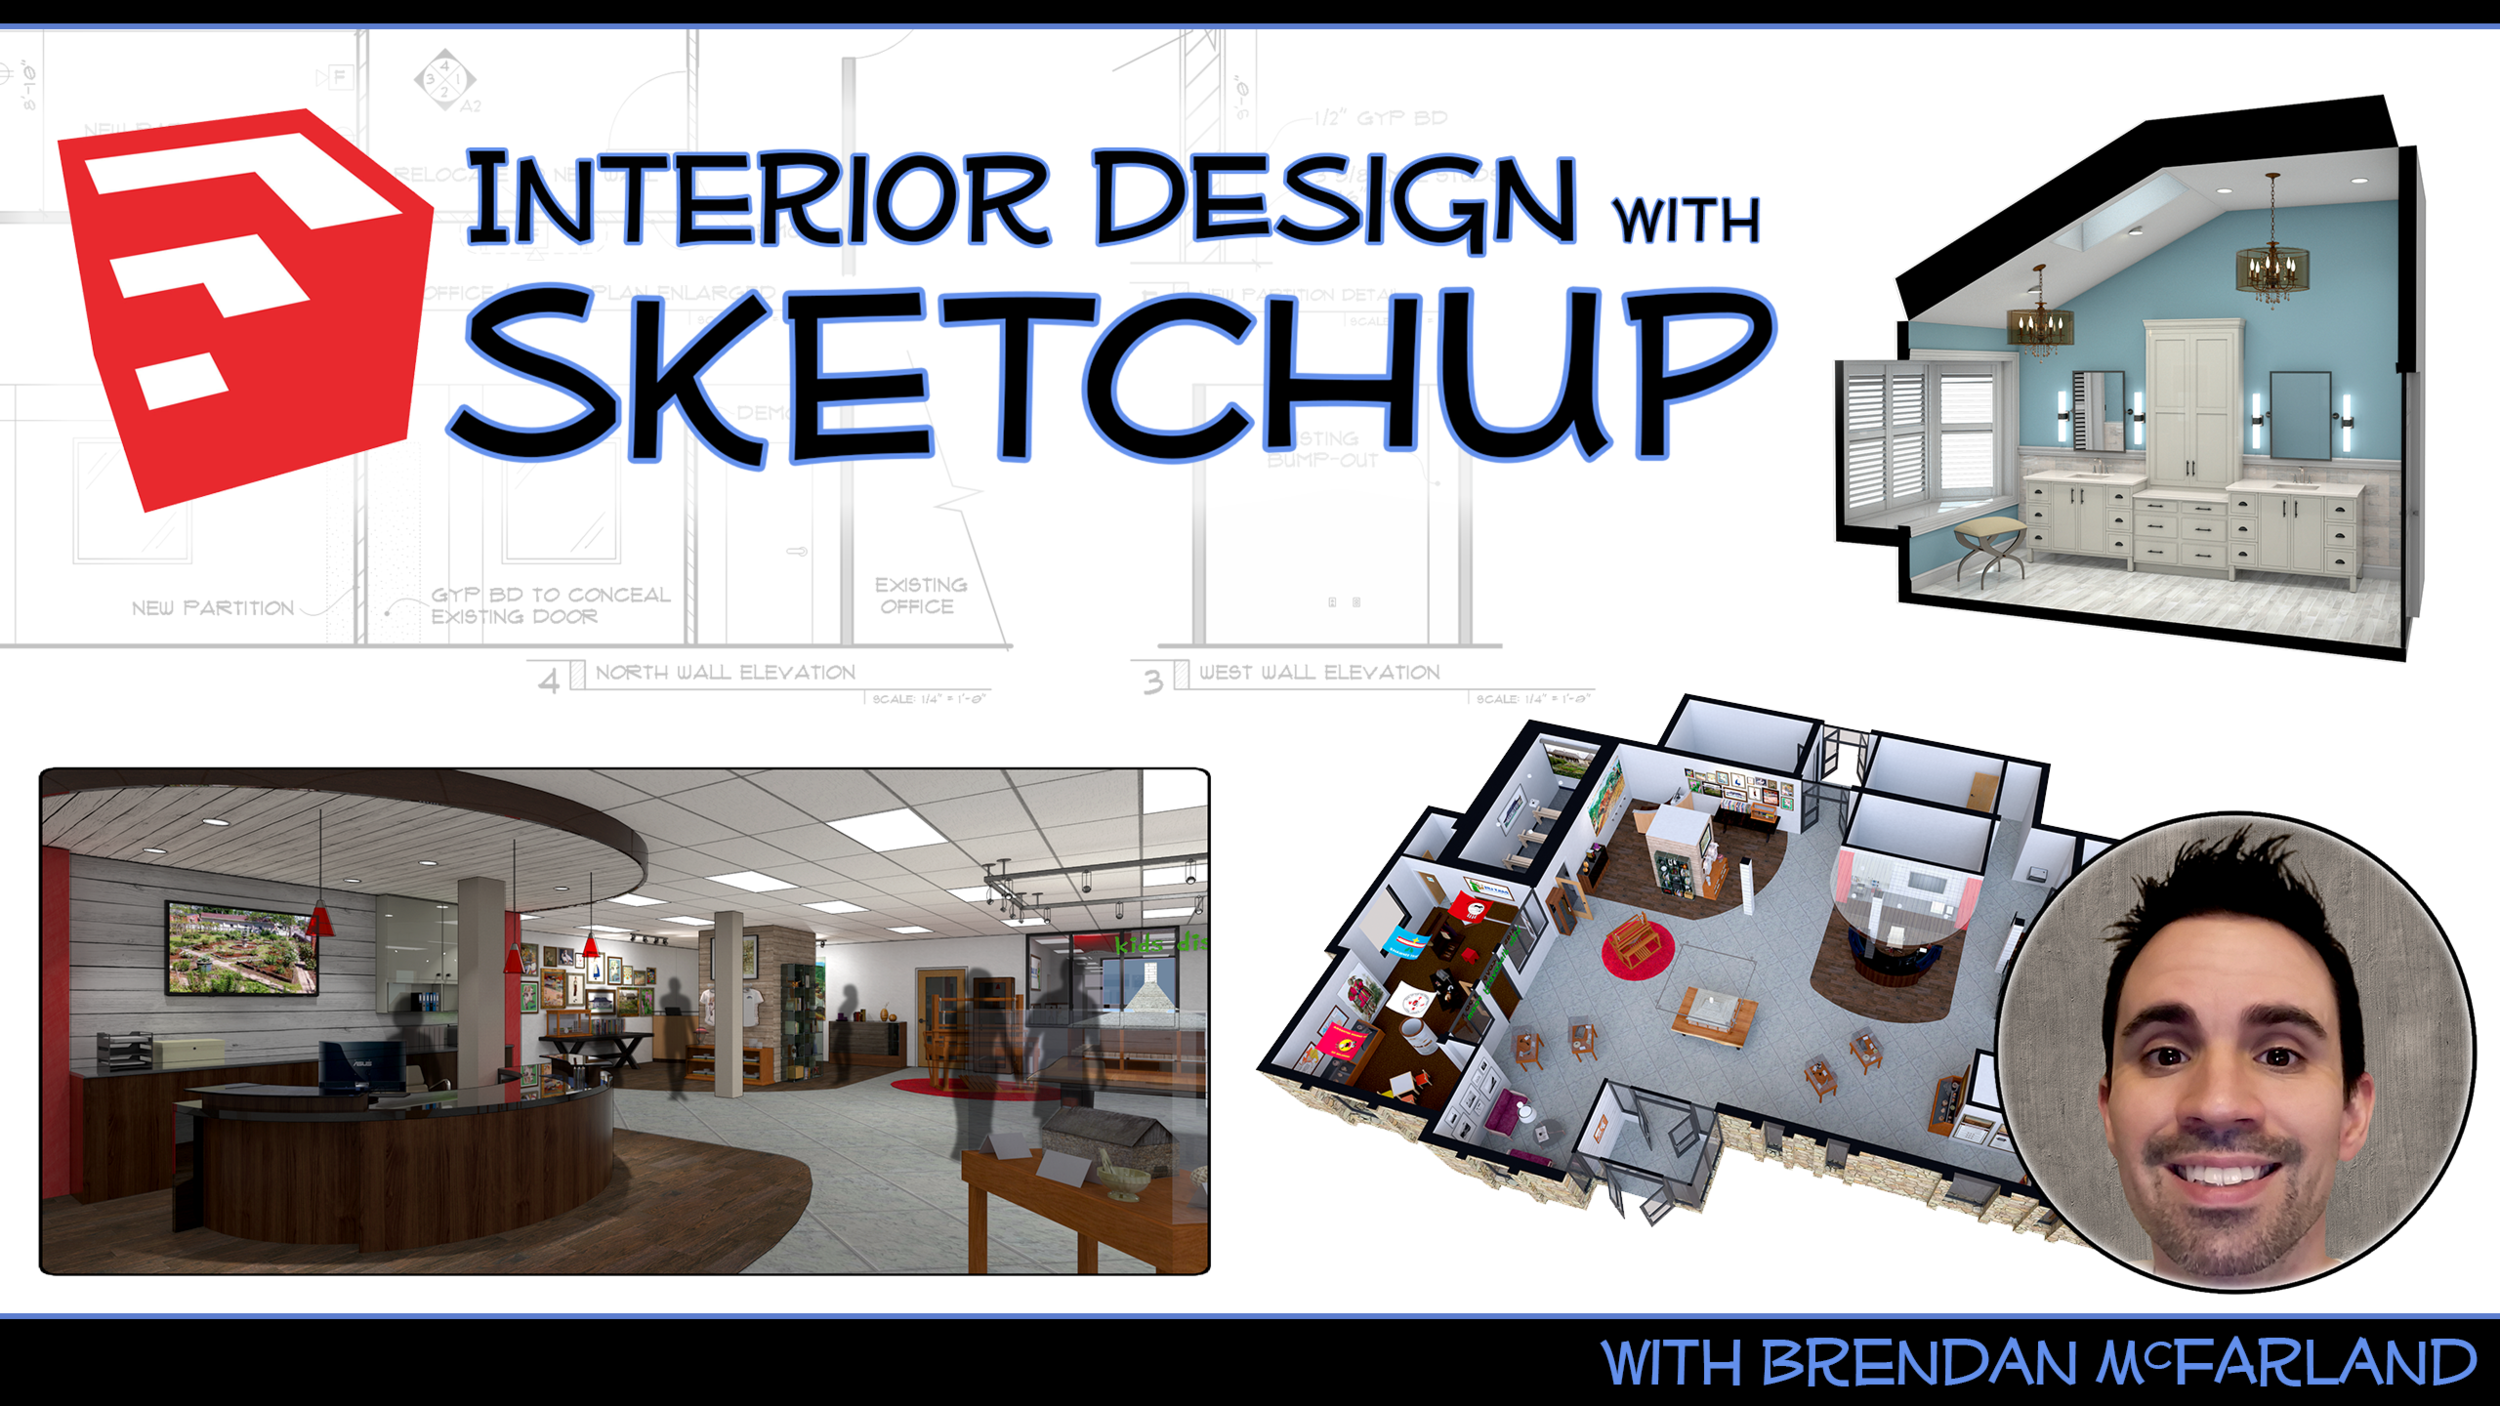 Want to learn how to make super sweet renderings for your interior design projects in sketchup? Of course you do! Subscribe to my youtube channel and learn how :D